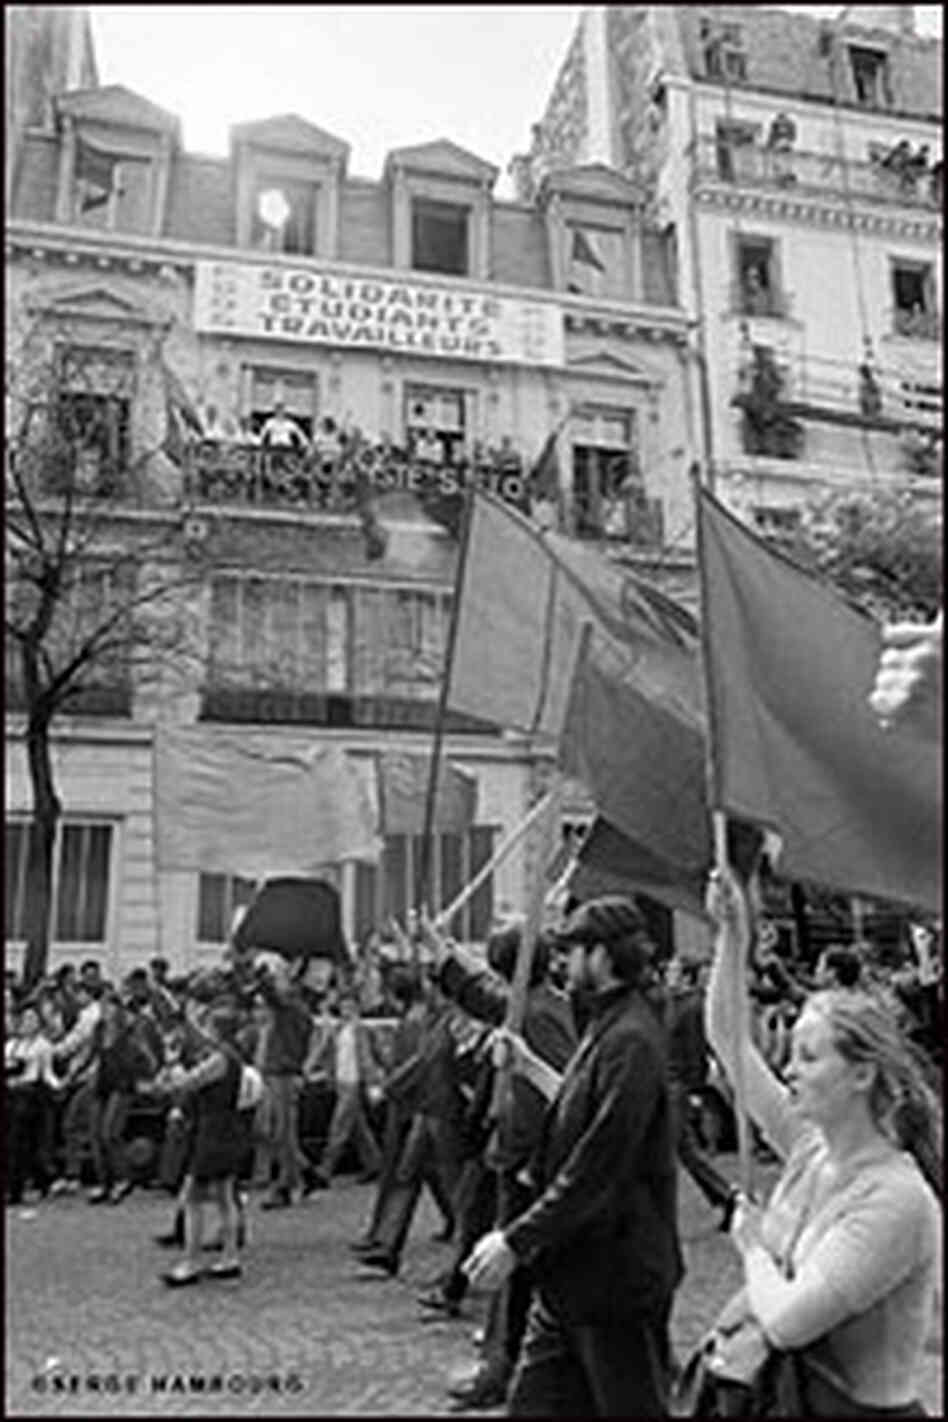 Students march in the streets of Paris in May 1968.